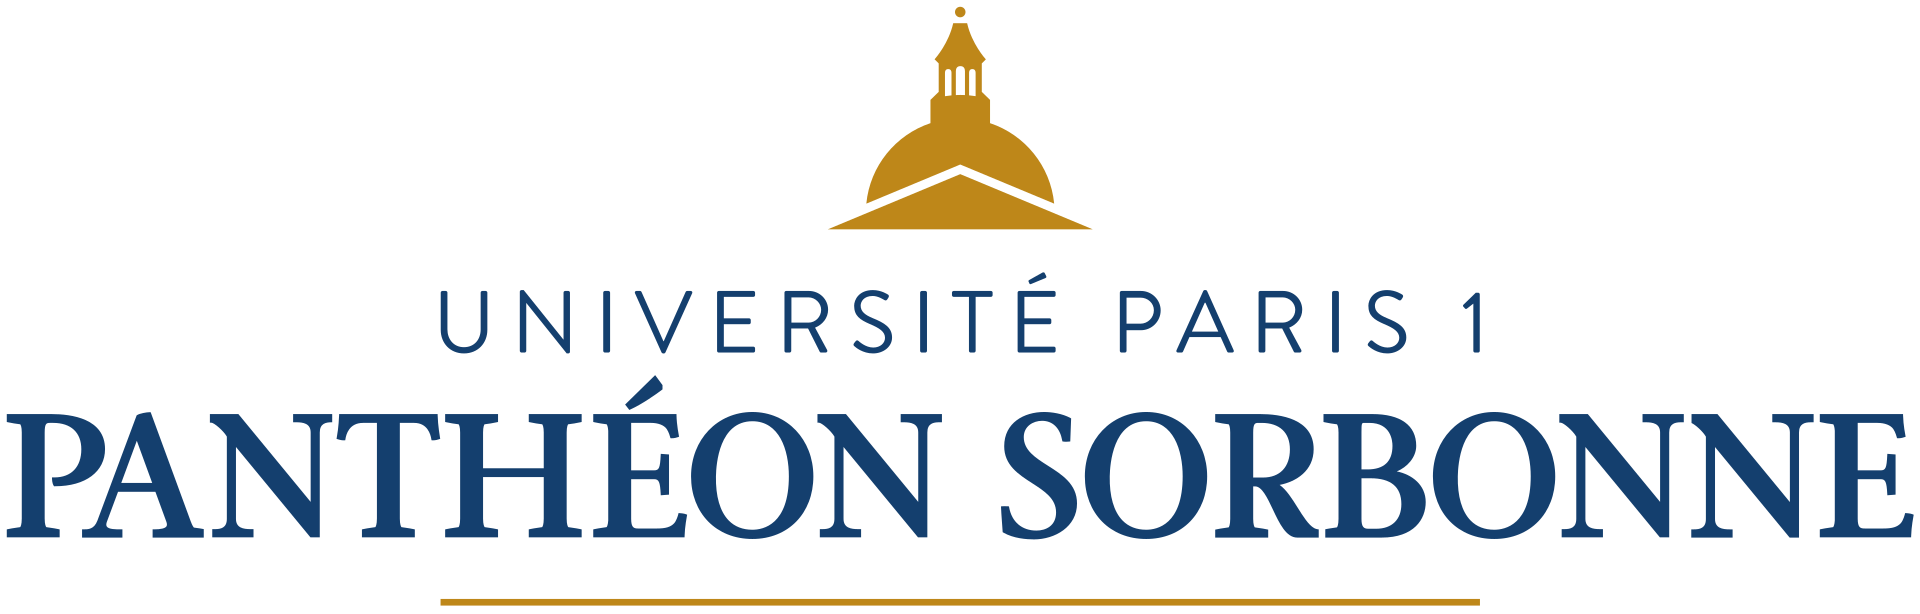 Pantheon-Sorbonne University Logo